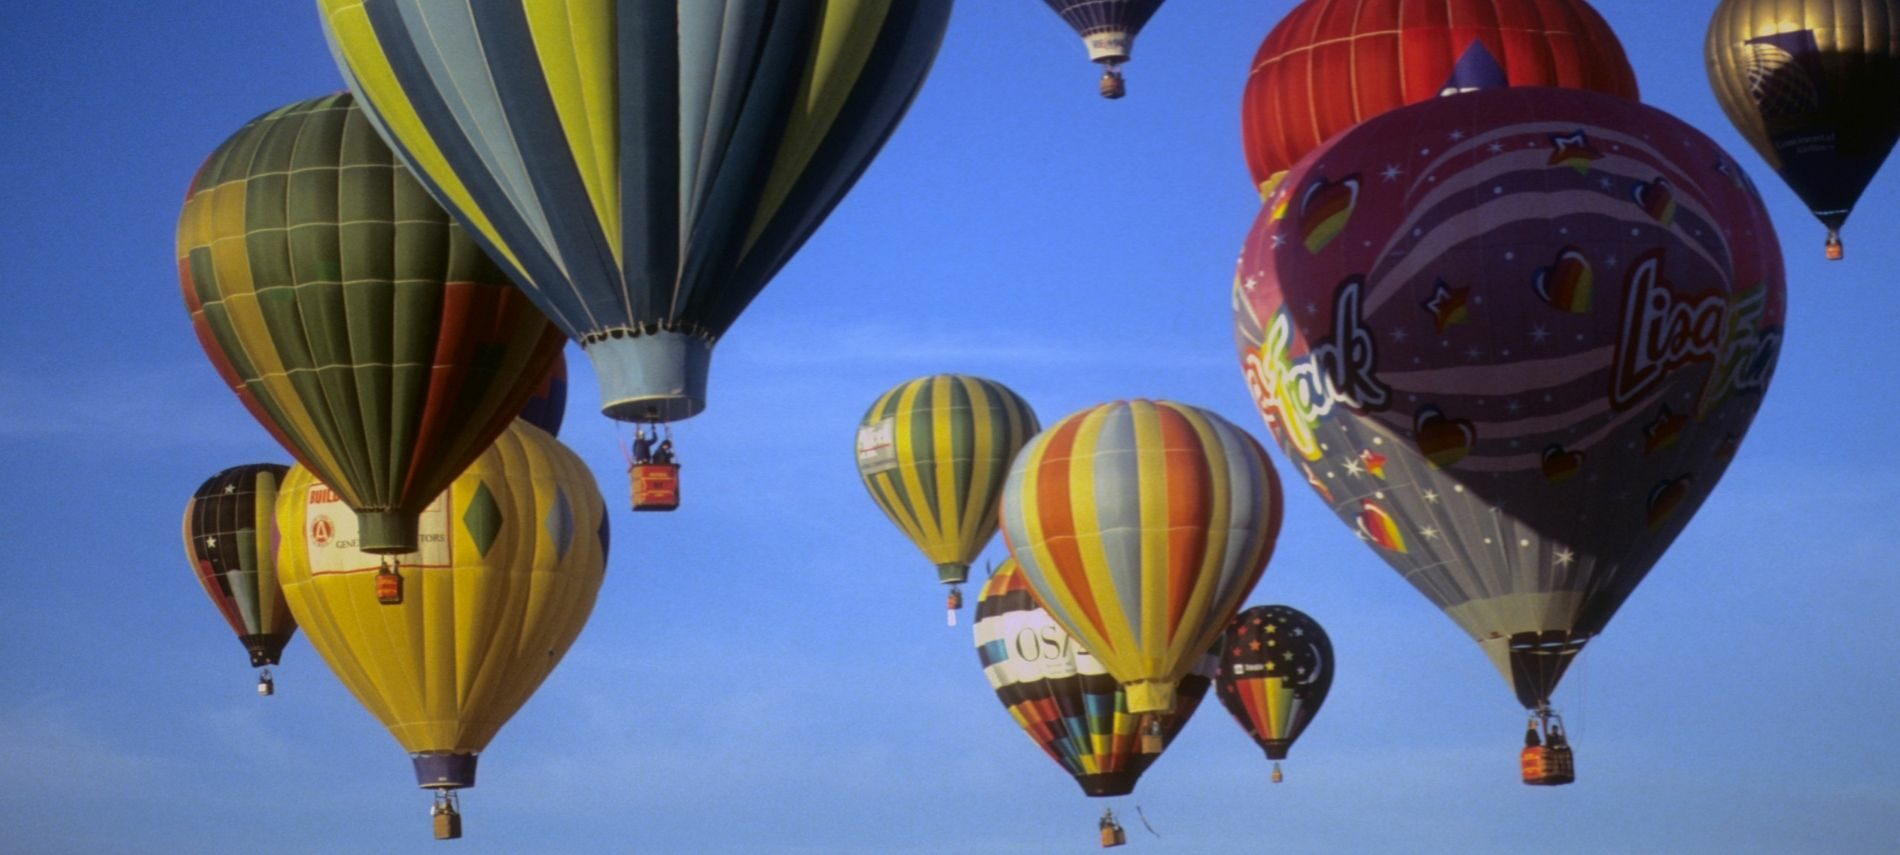 Many bright colored hot air balloons in a deep blue sky